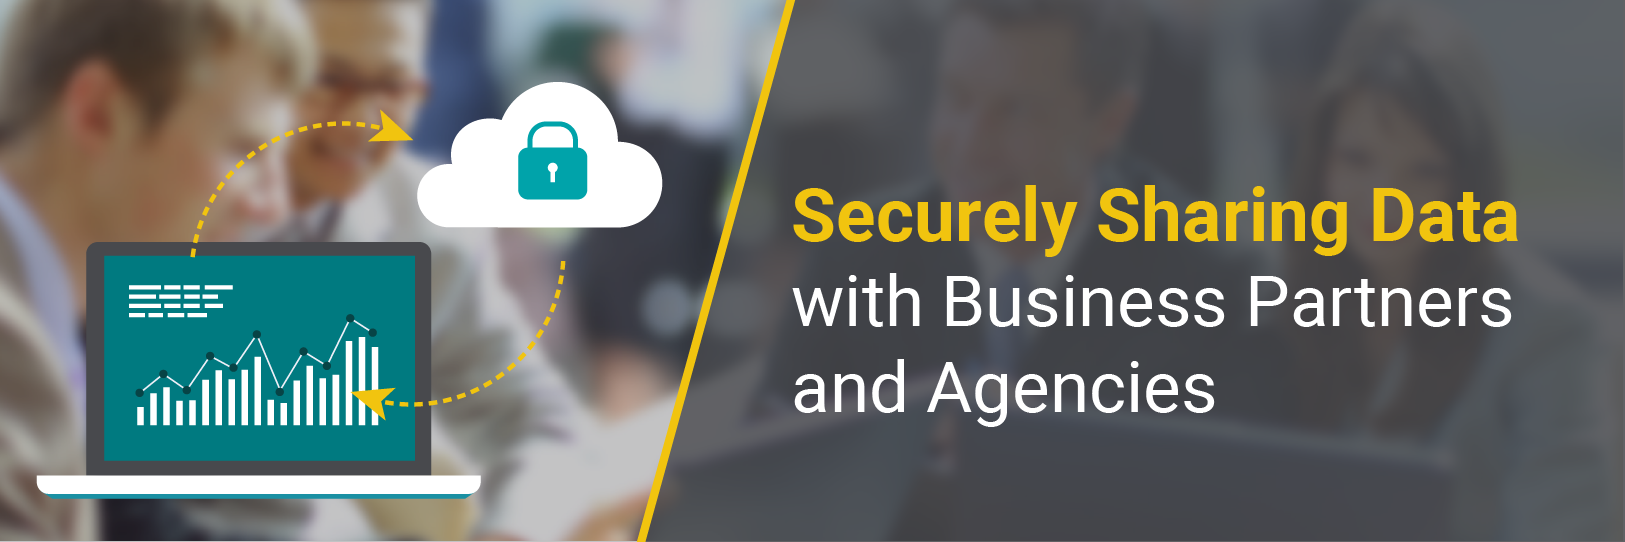 Securely Sharing Data with Business Partners and Agencies